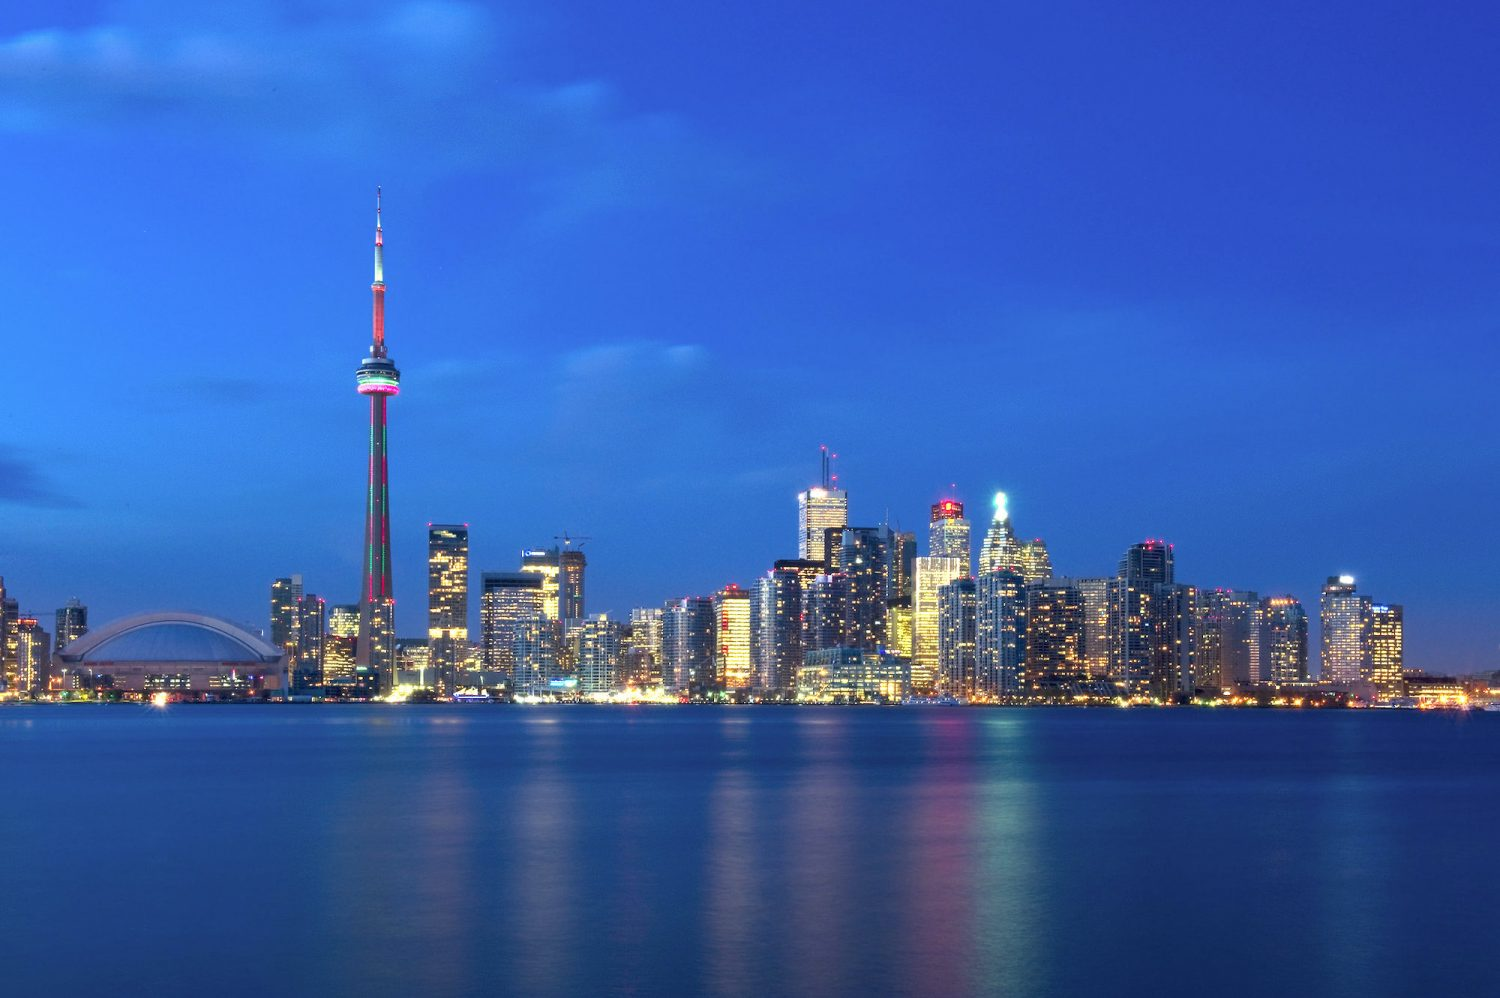 The Many Faces of Toronto